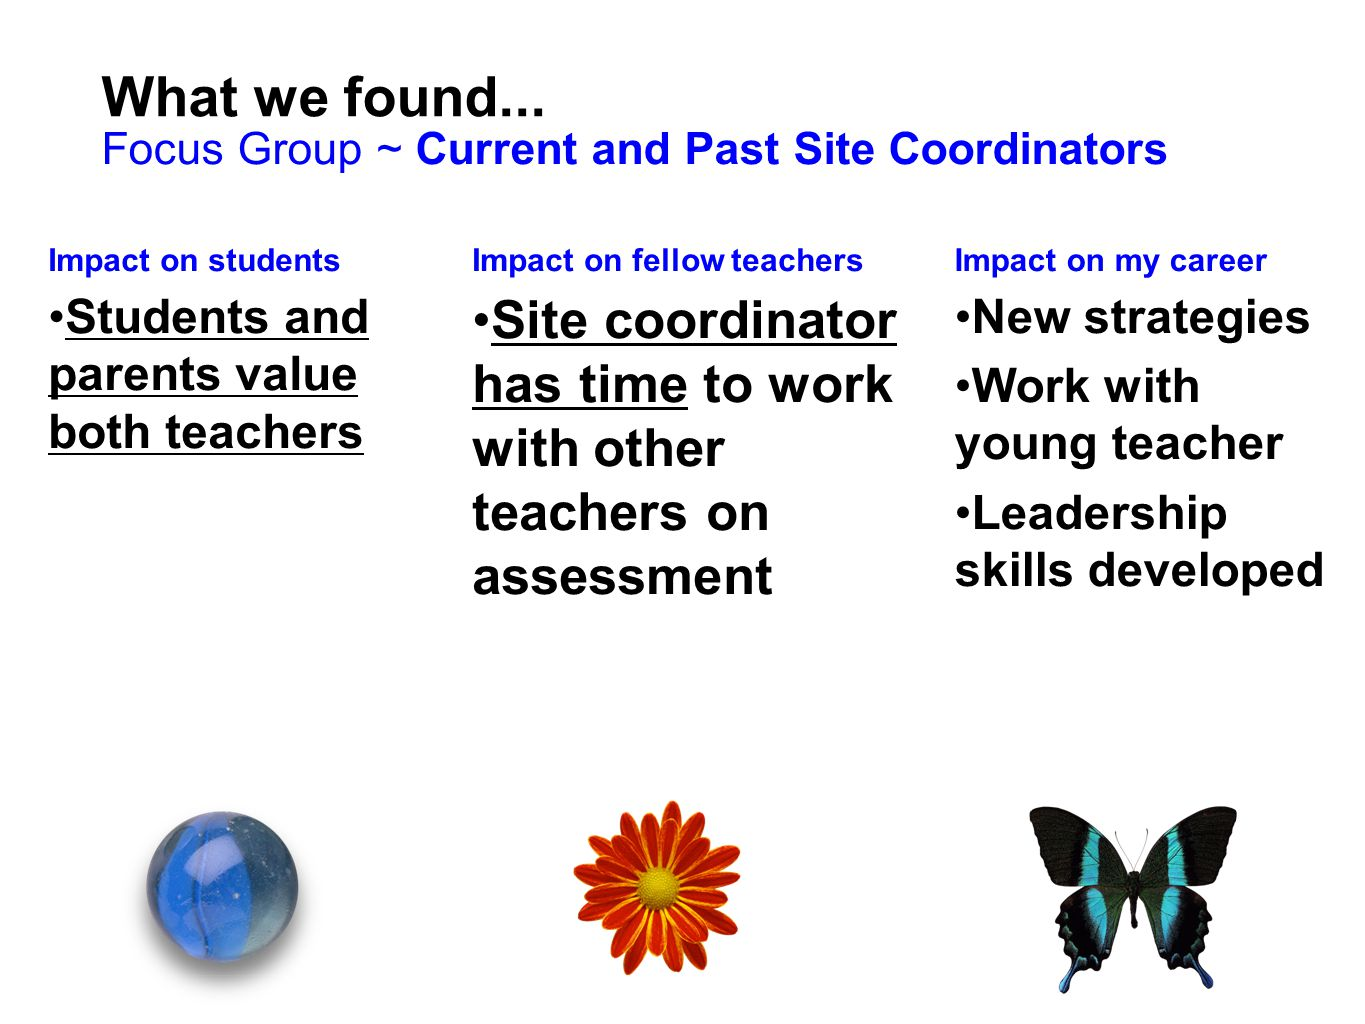 What we found... Focus Group ~ Current and Past Site Coordinators. Impact on students. Students and parents value both teachers.